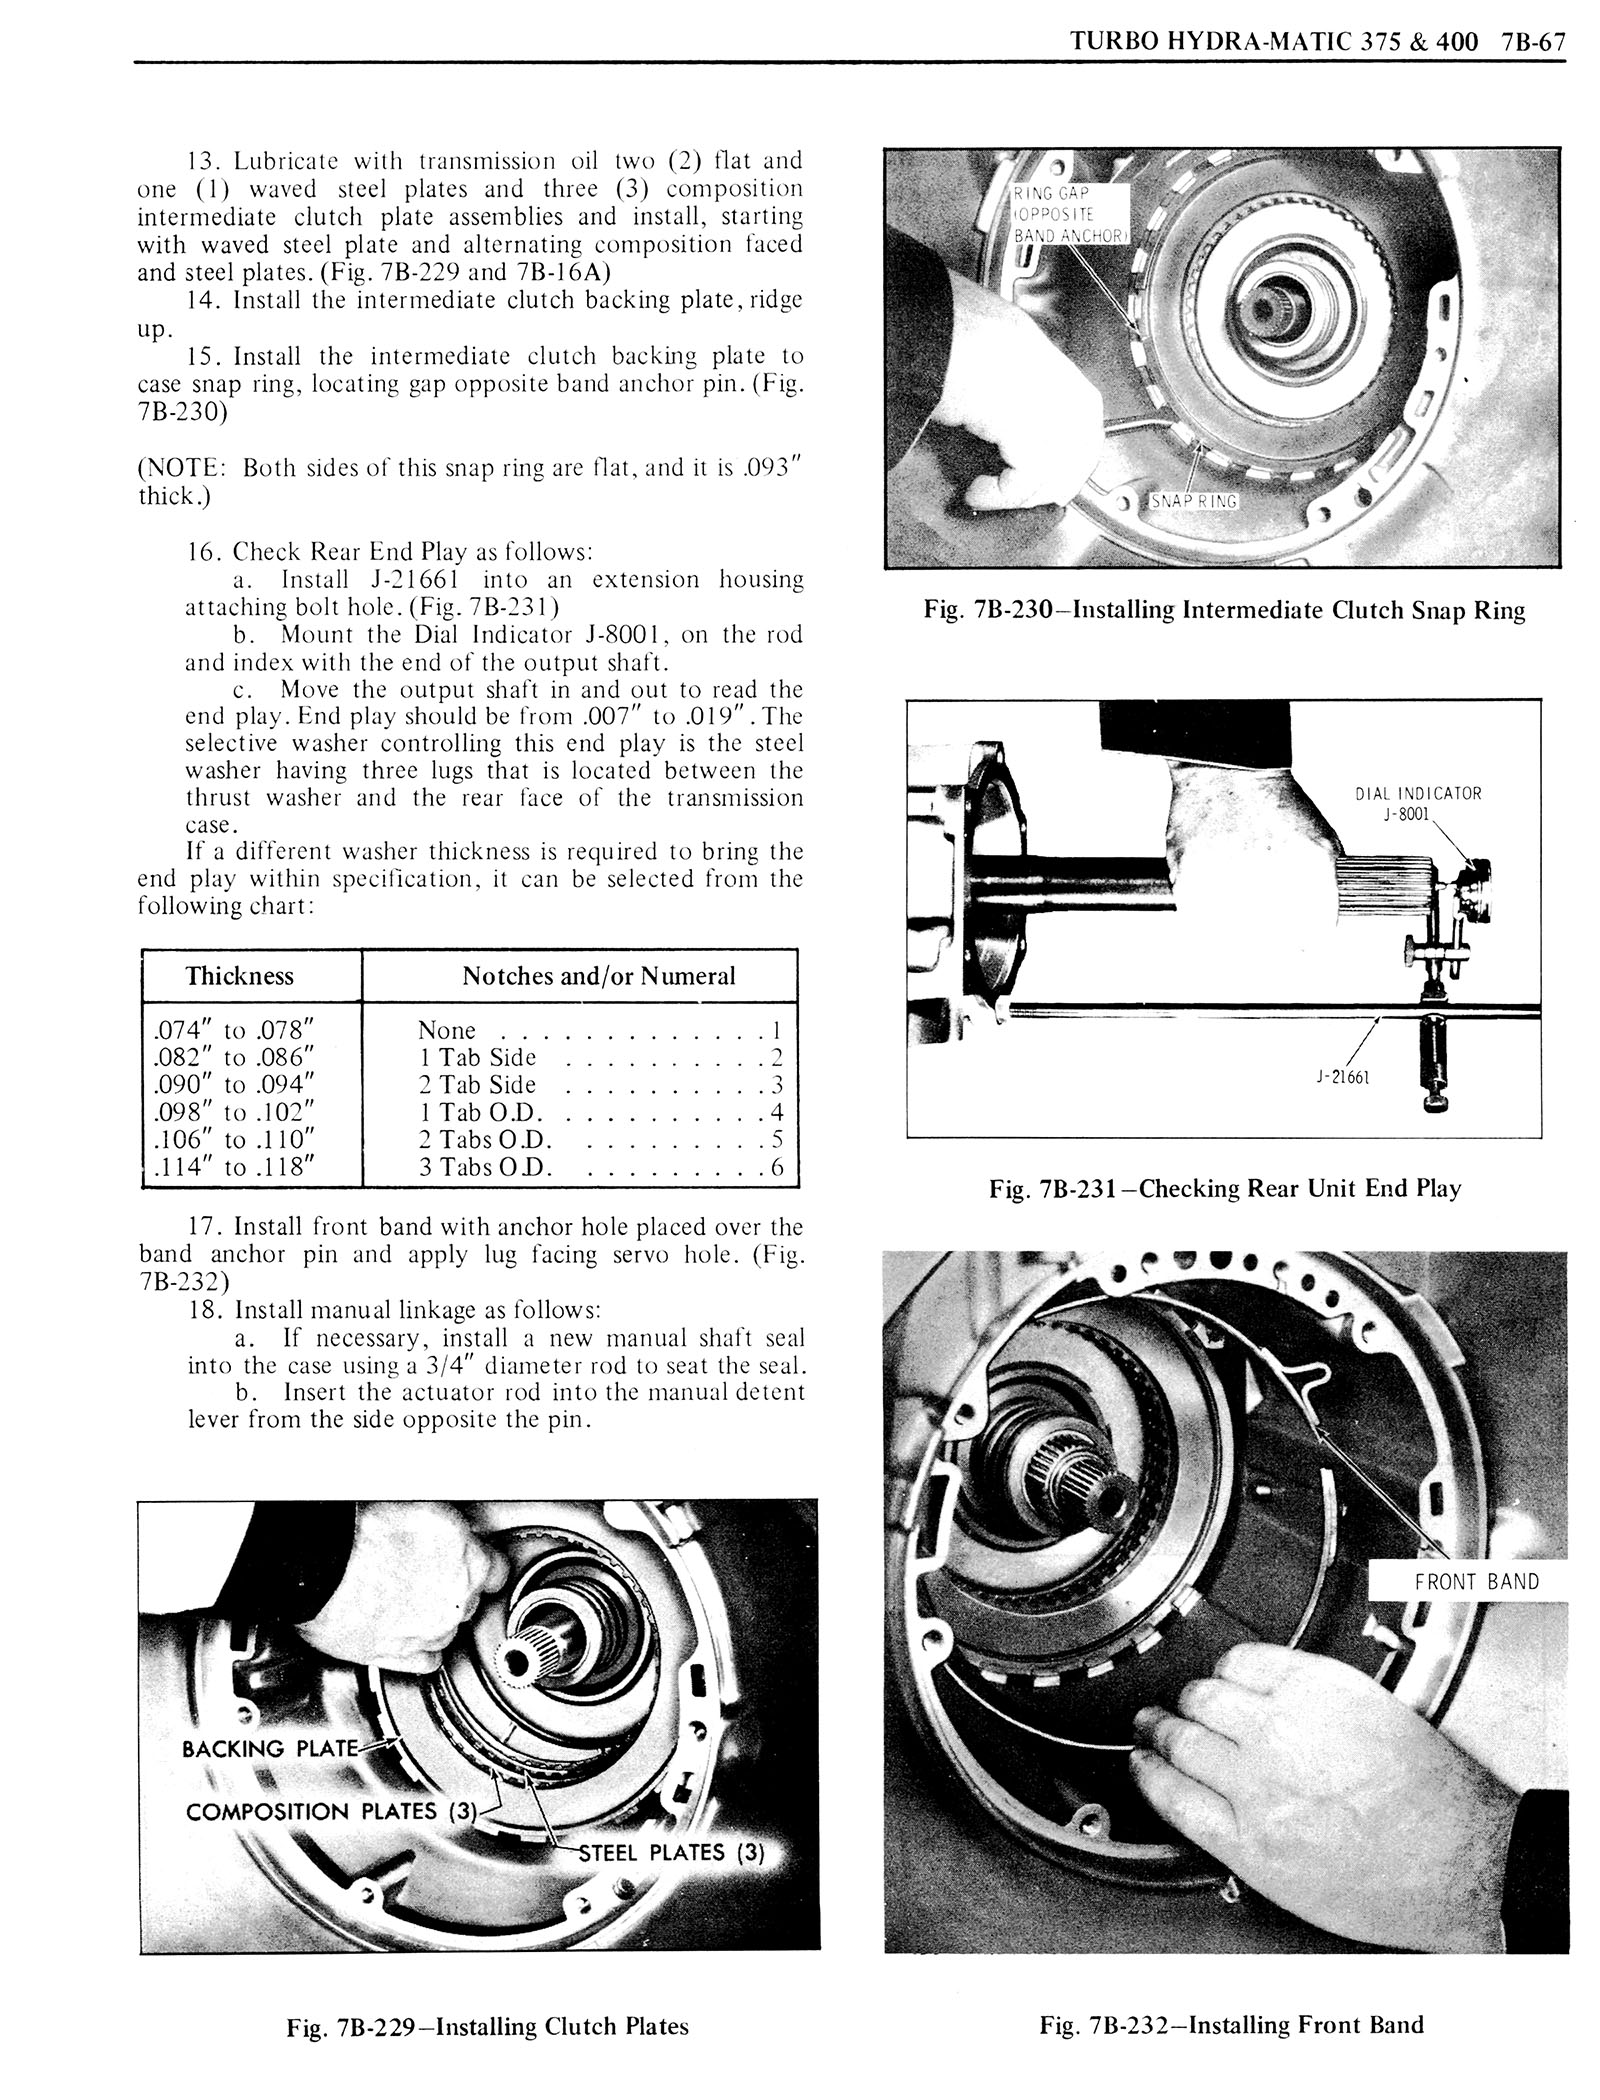 1976 Oldsmobile Service Manual page 799 of 1390